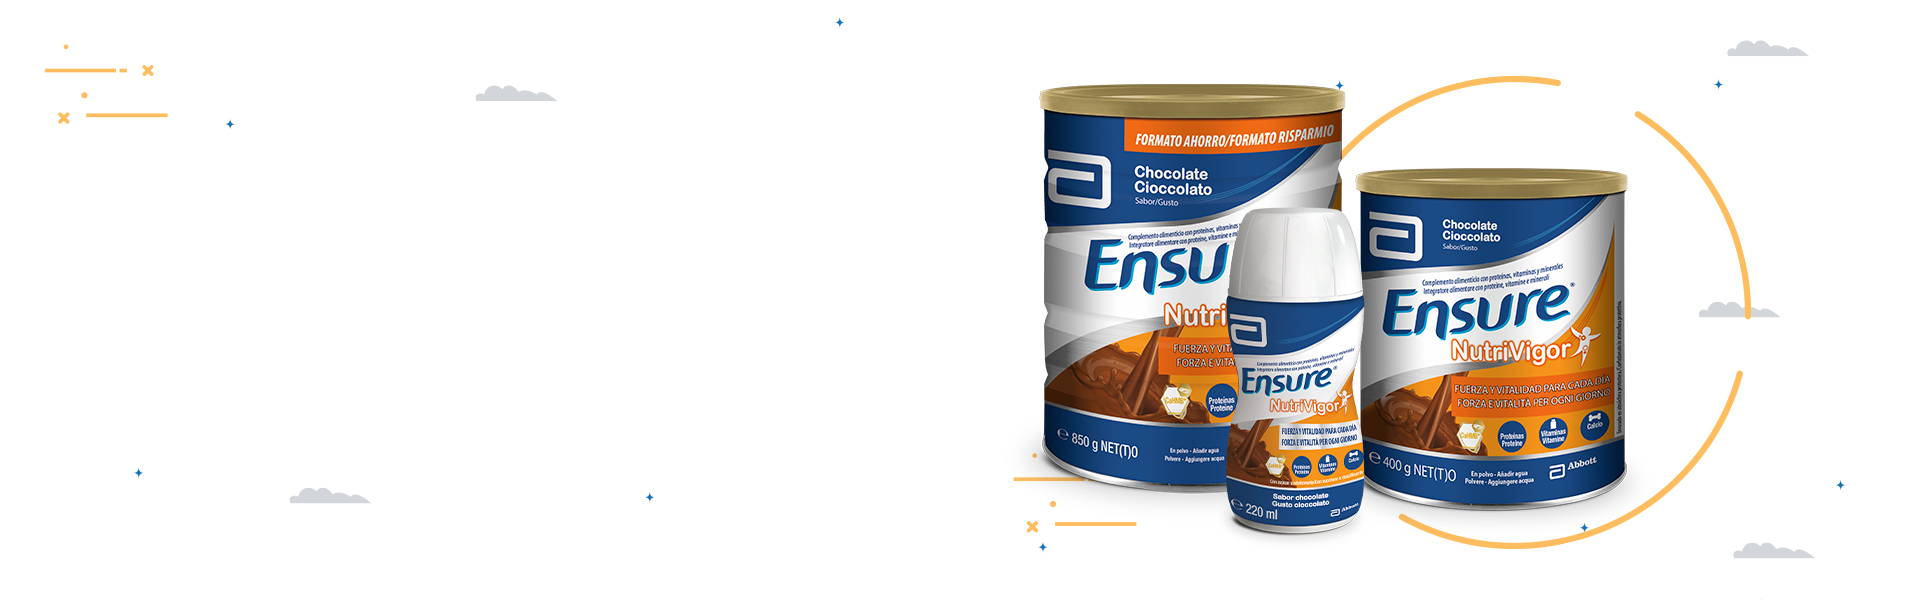 06BANNER_ENSURE-NUTRIVIGOR_1920x600_V2_CHOCOLATE